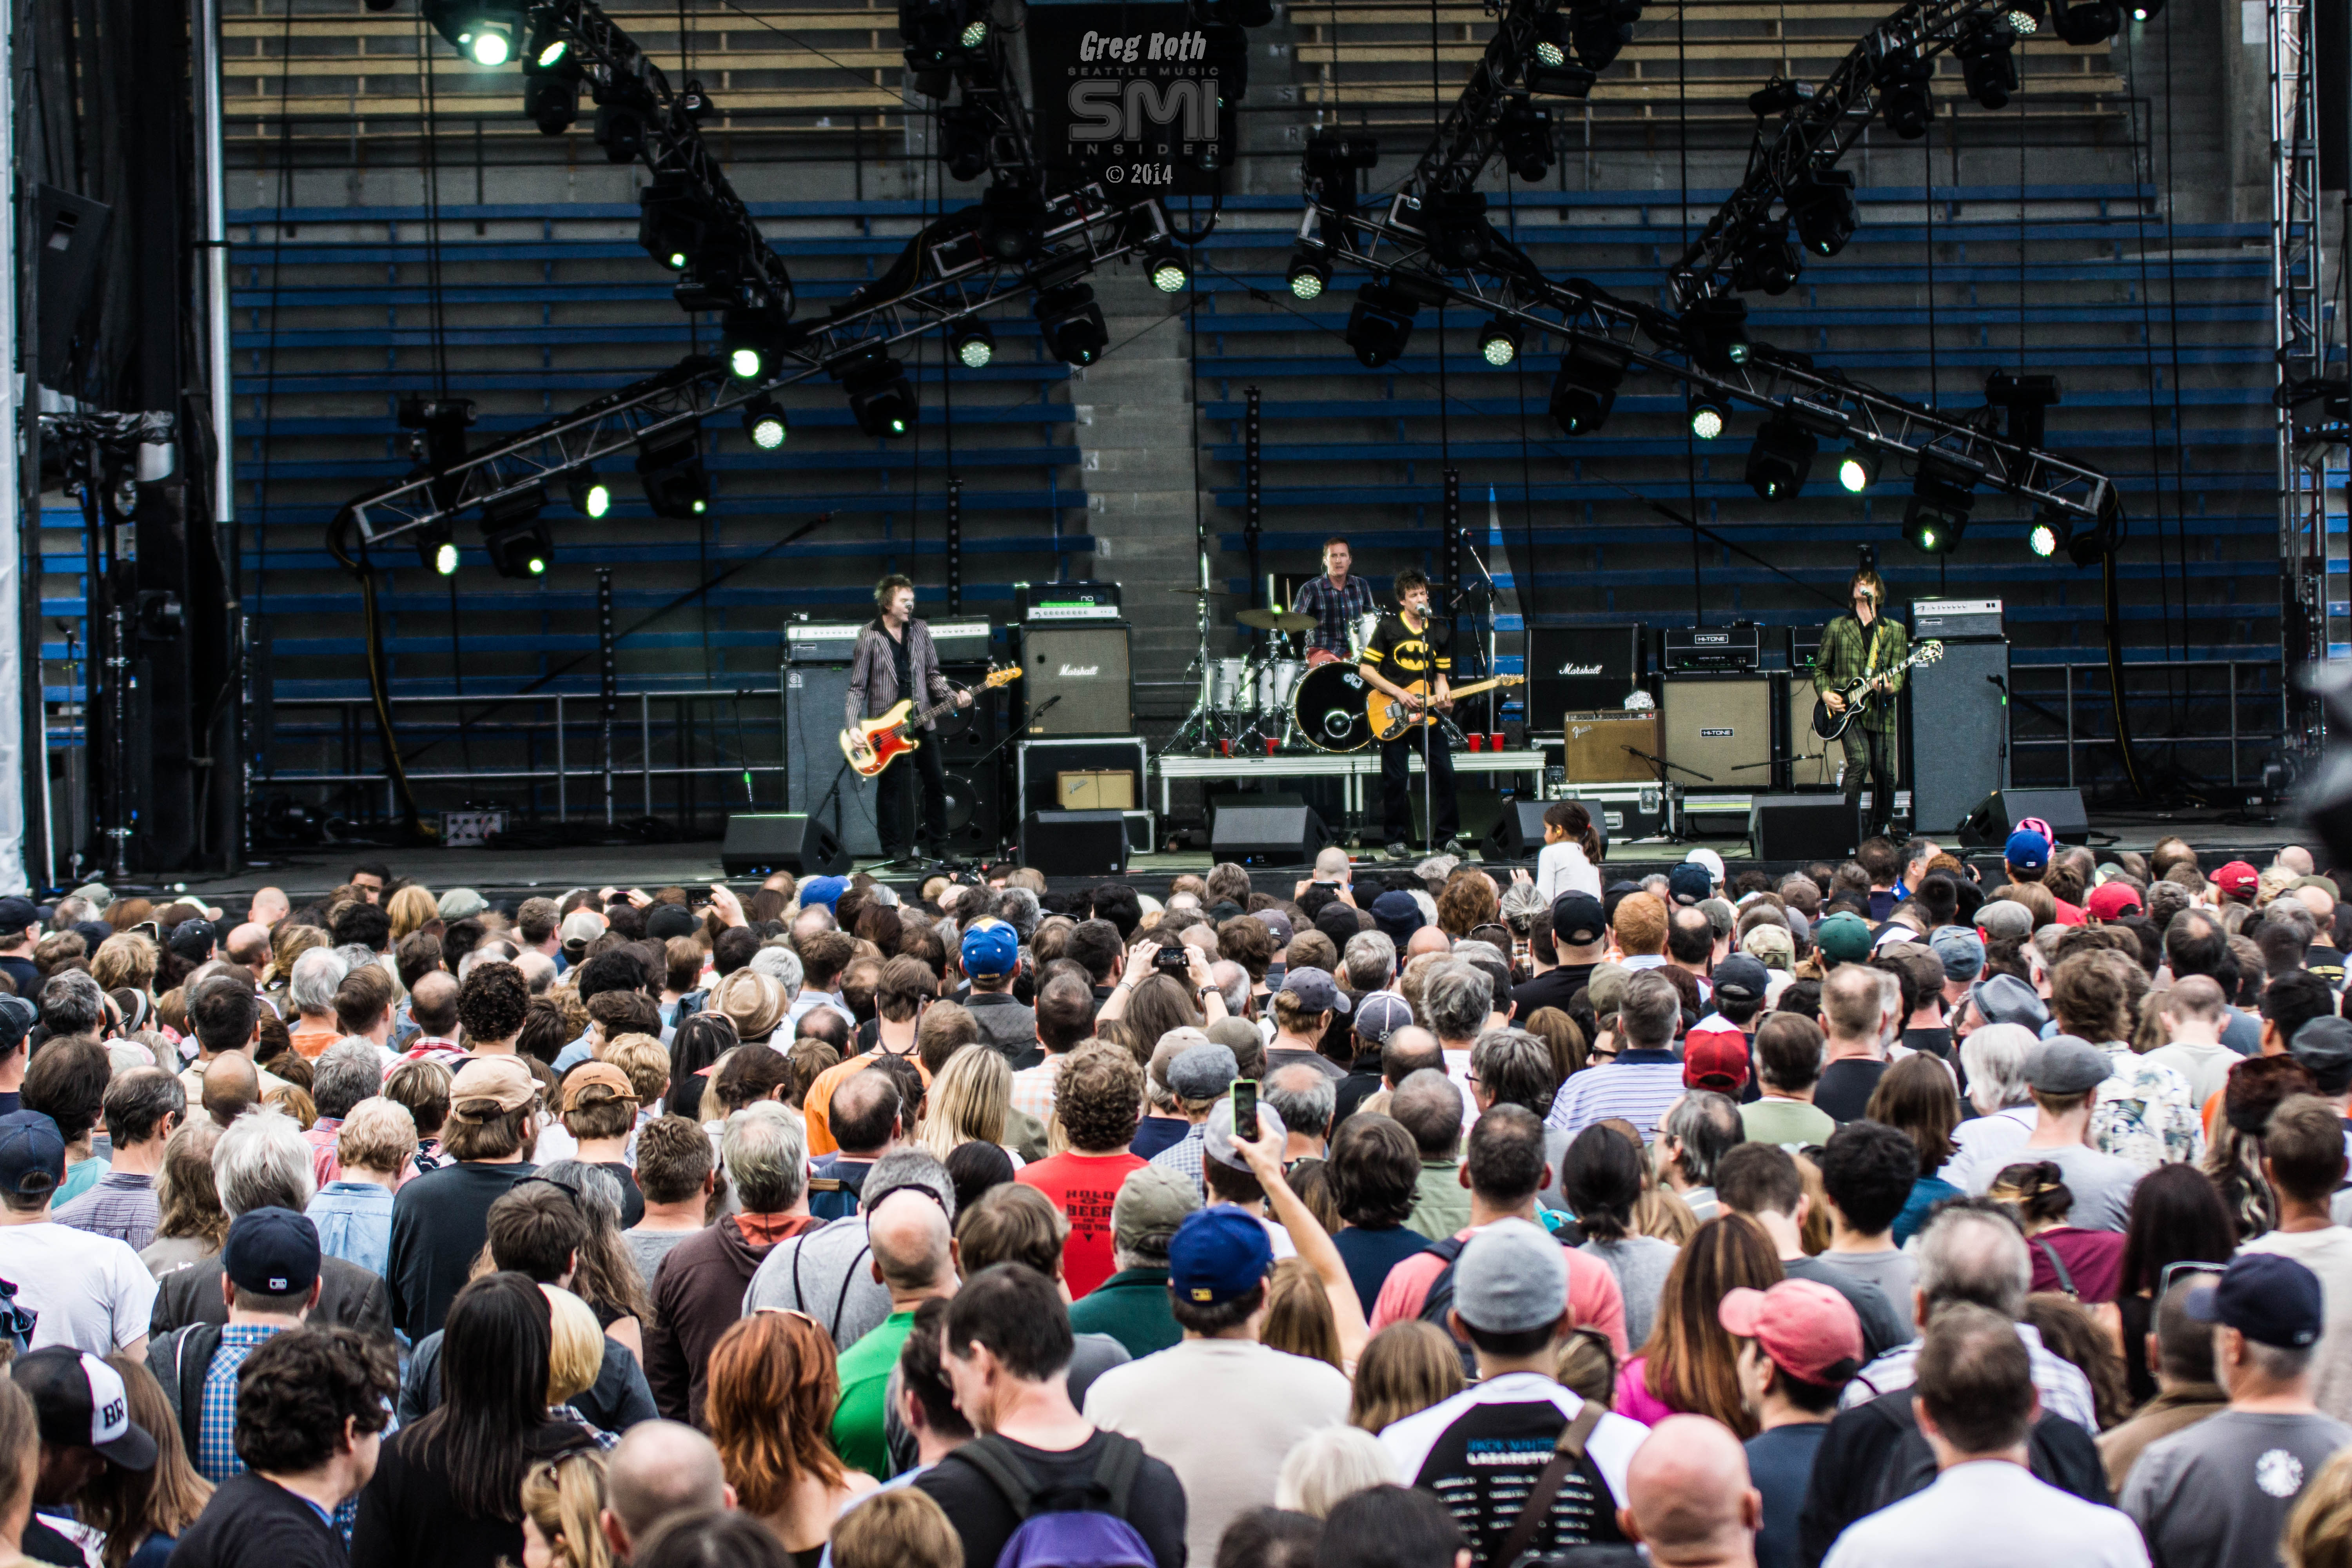 The Replacements Live @ Bumbershoot 2014 (Photo by Greg Roth)